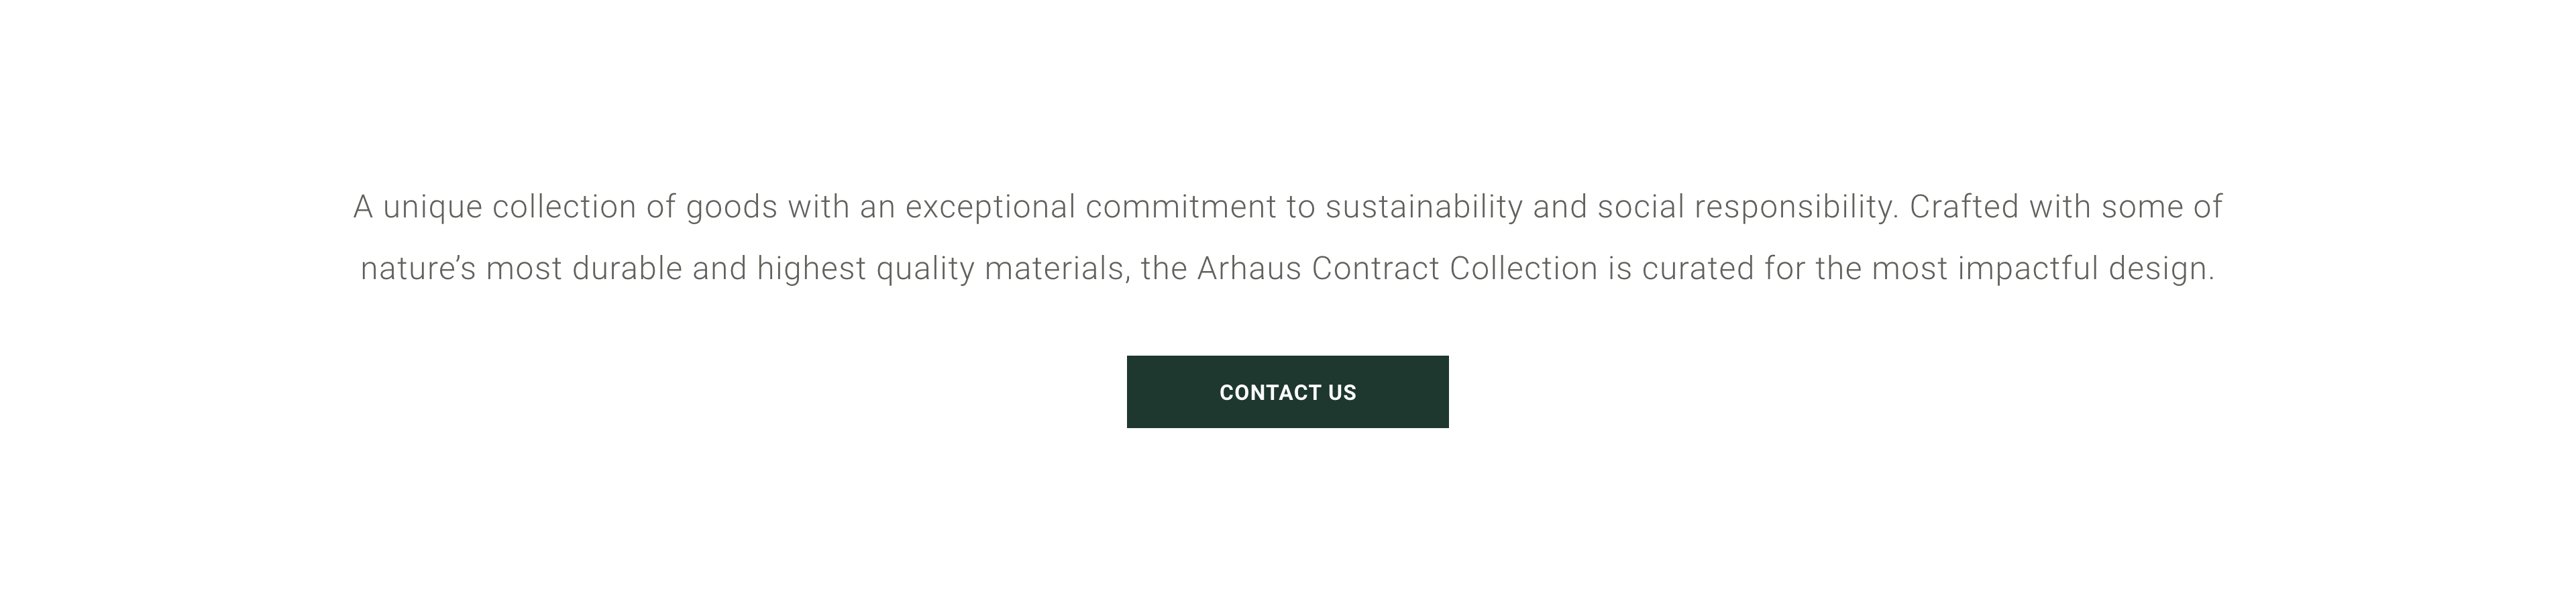 Contact Arhaus for Contract Business